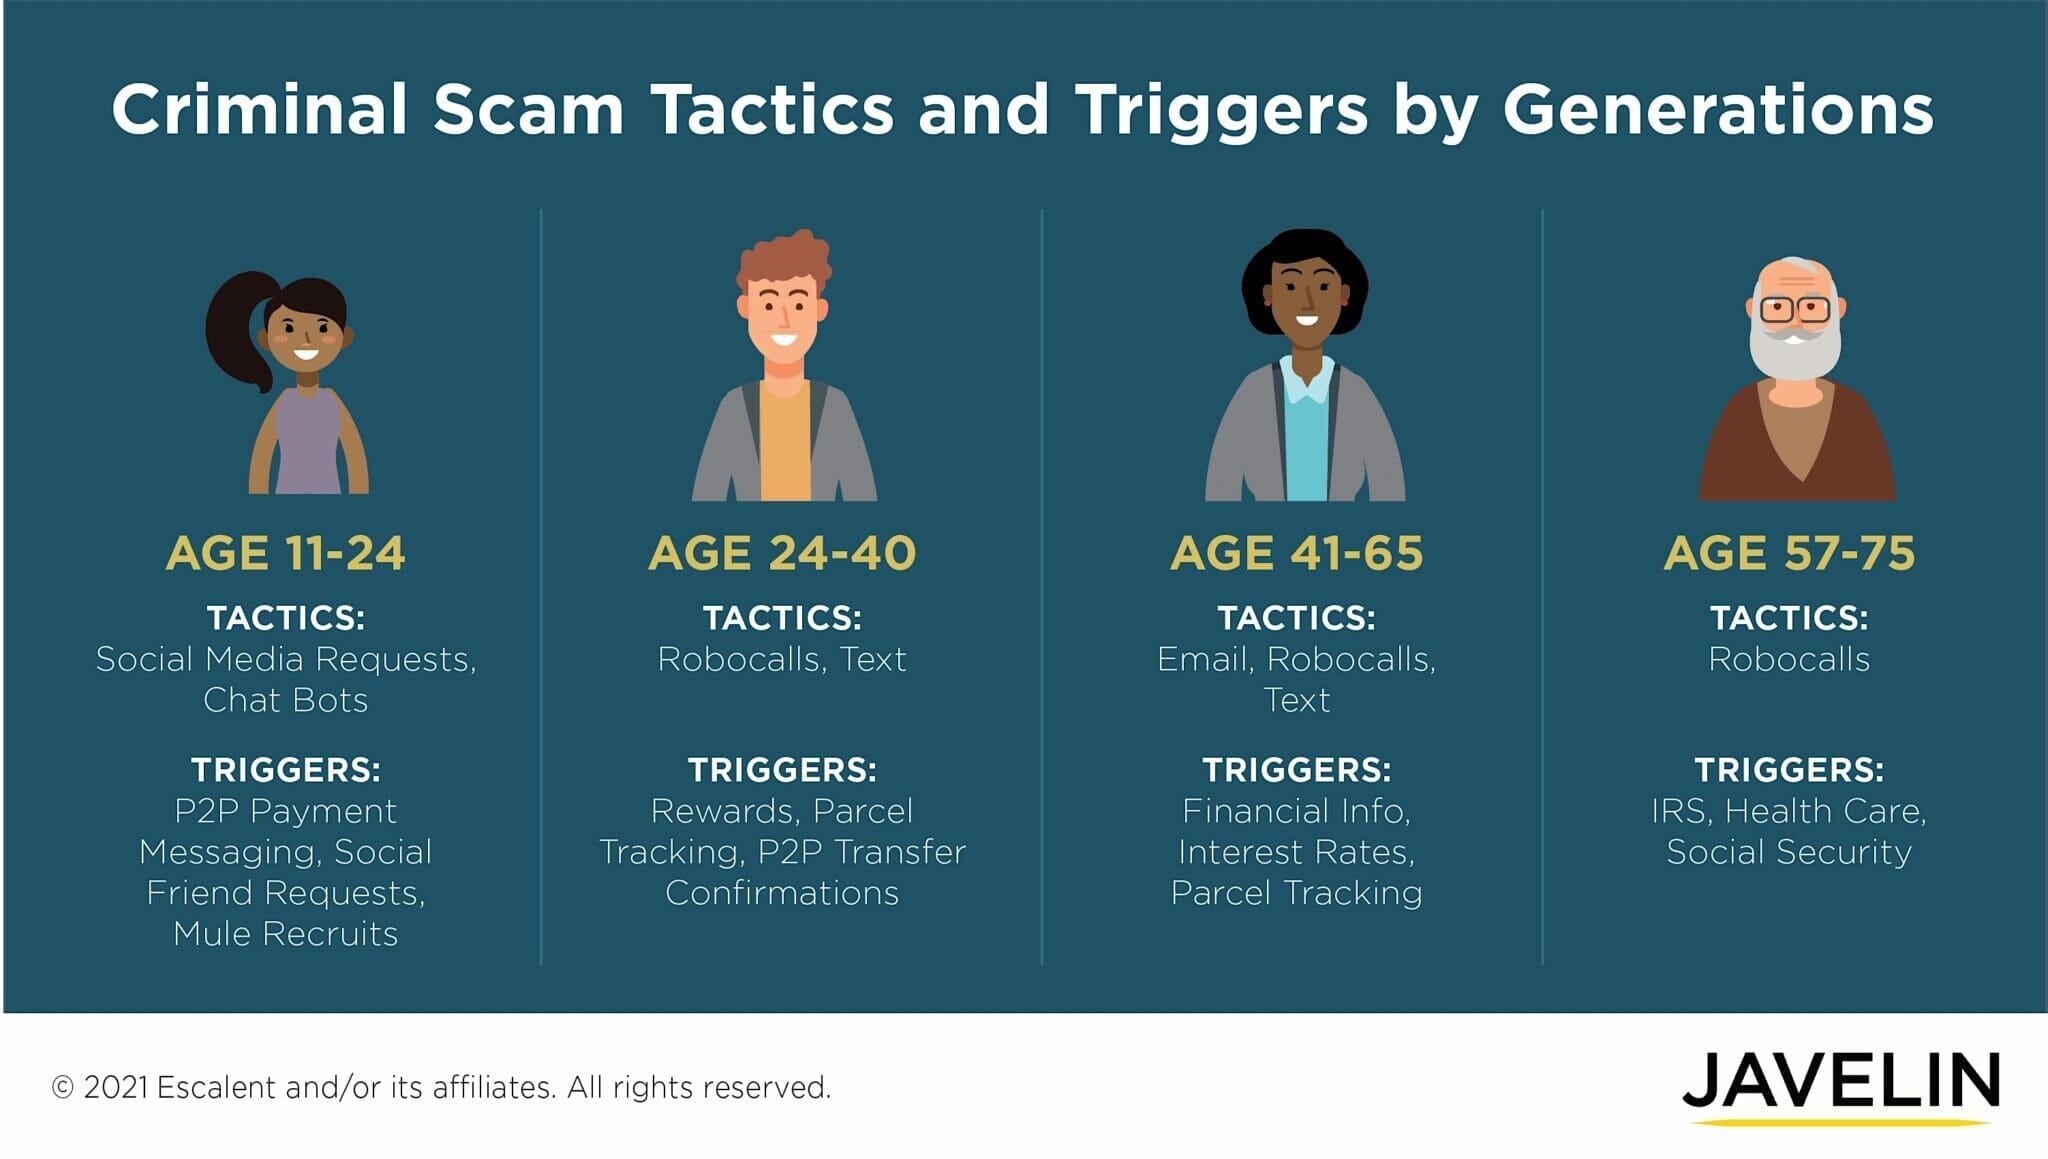 Criminal Scam Tactics by Age